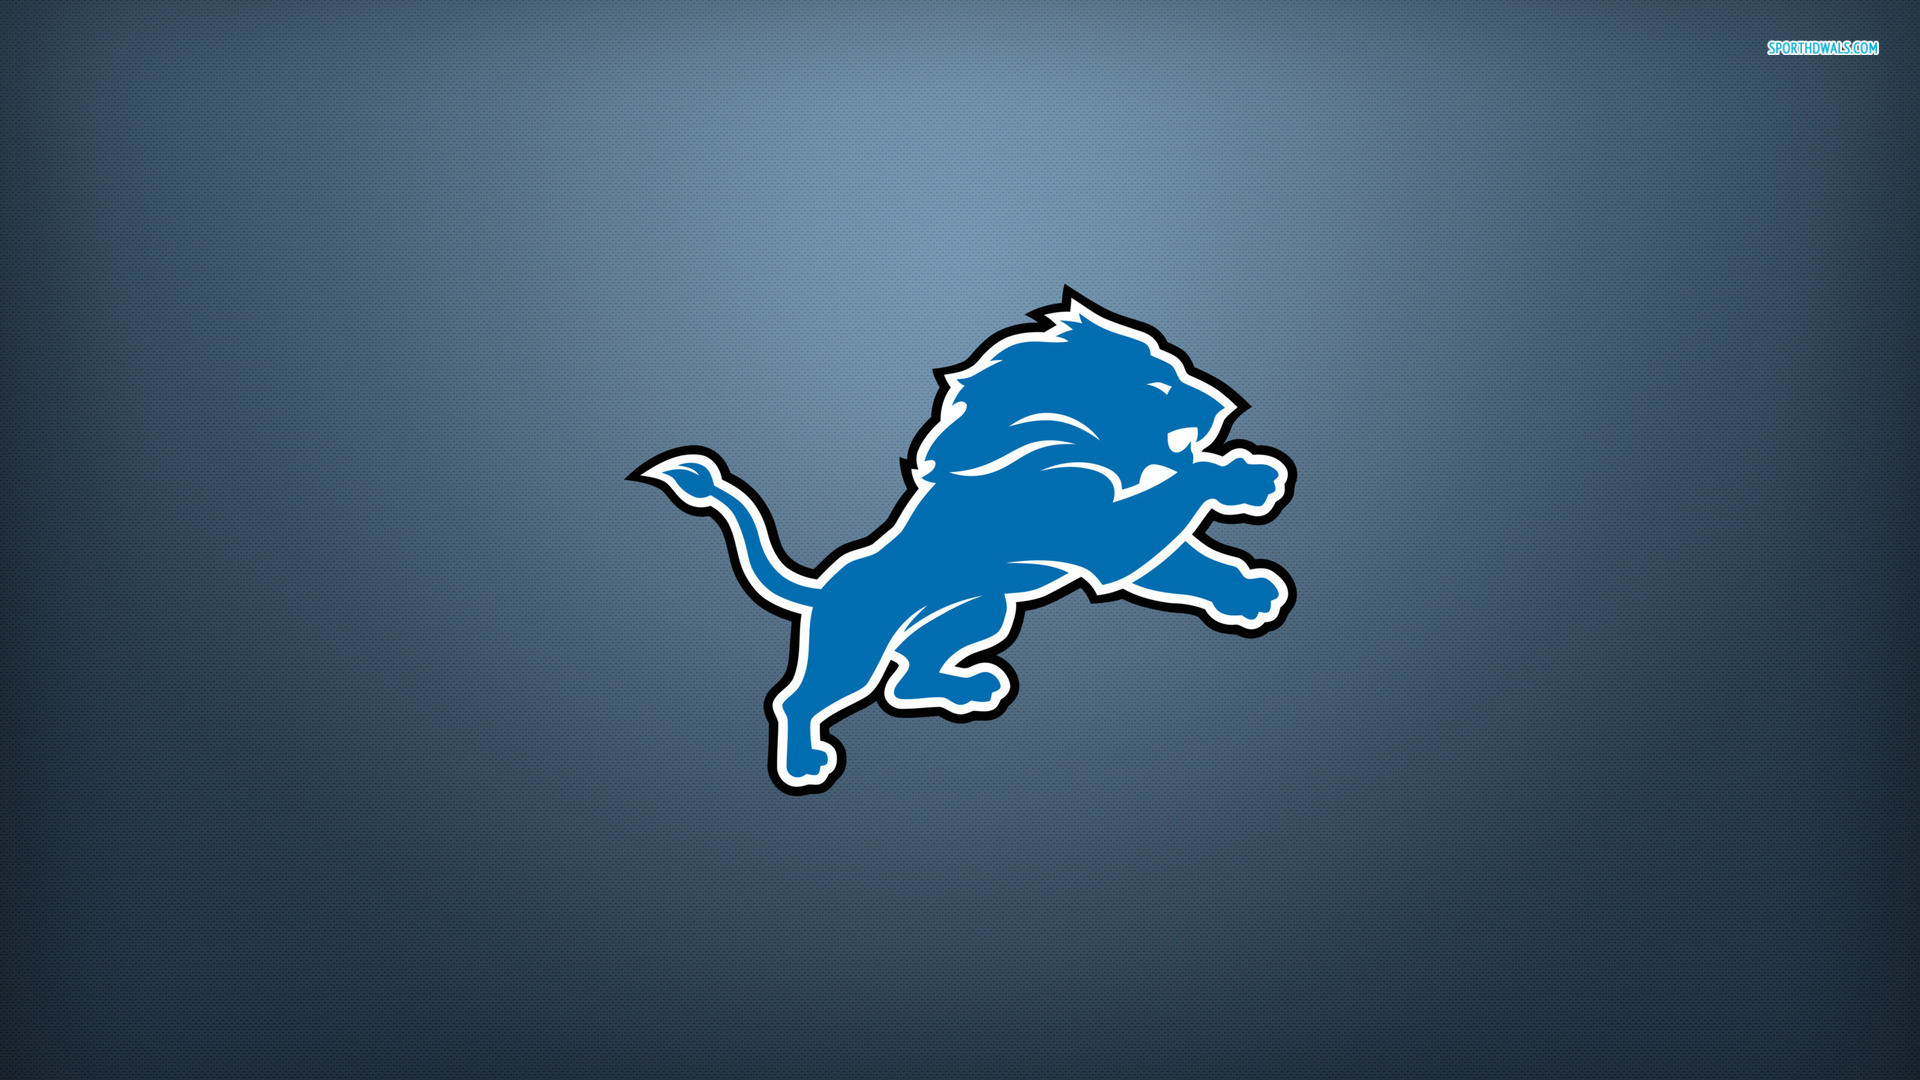 Detroit Lions Wallpaper Collection For Free Download | HD Wallpapers |  Pinterest | Detroit lions wallpaper